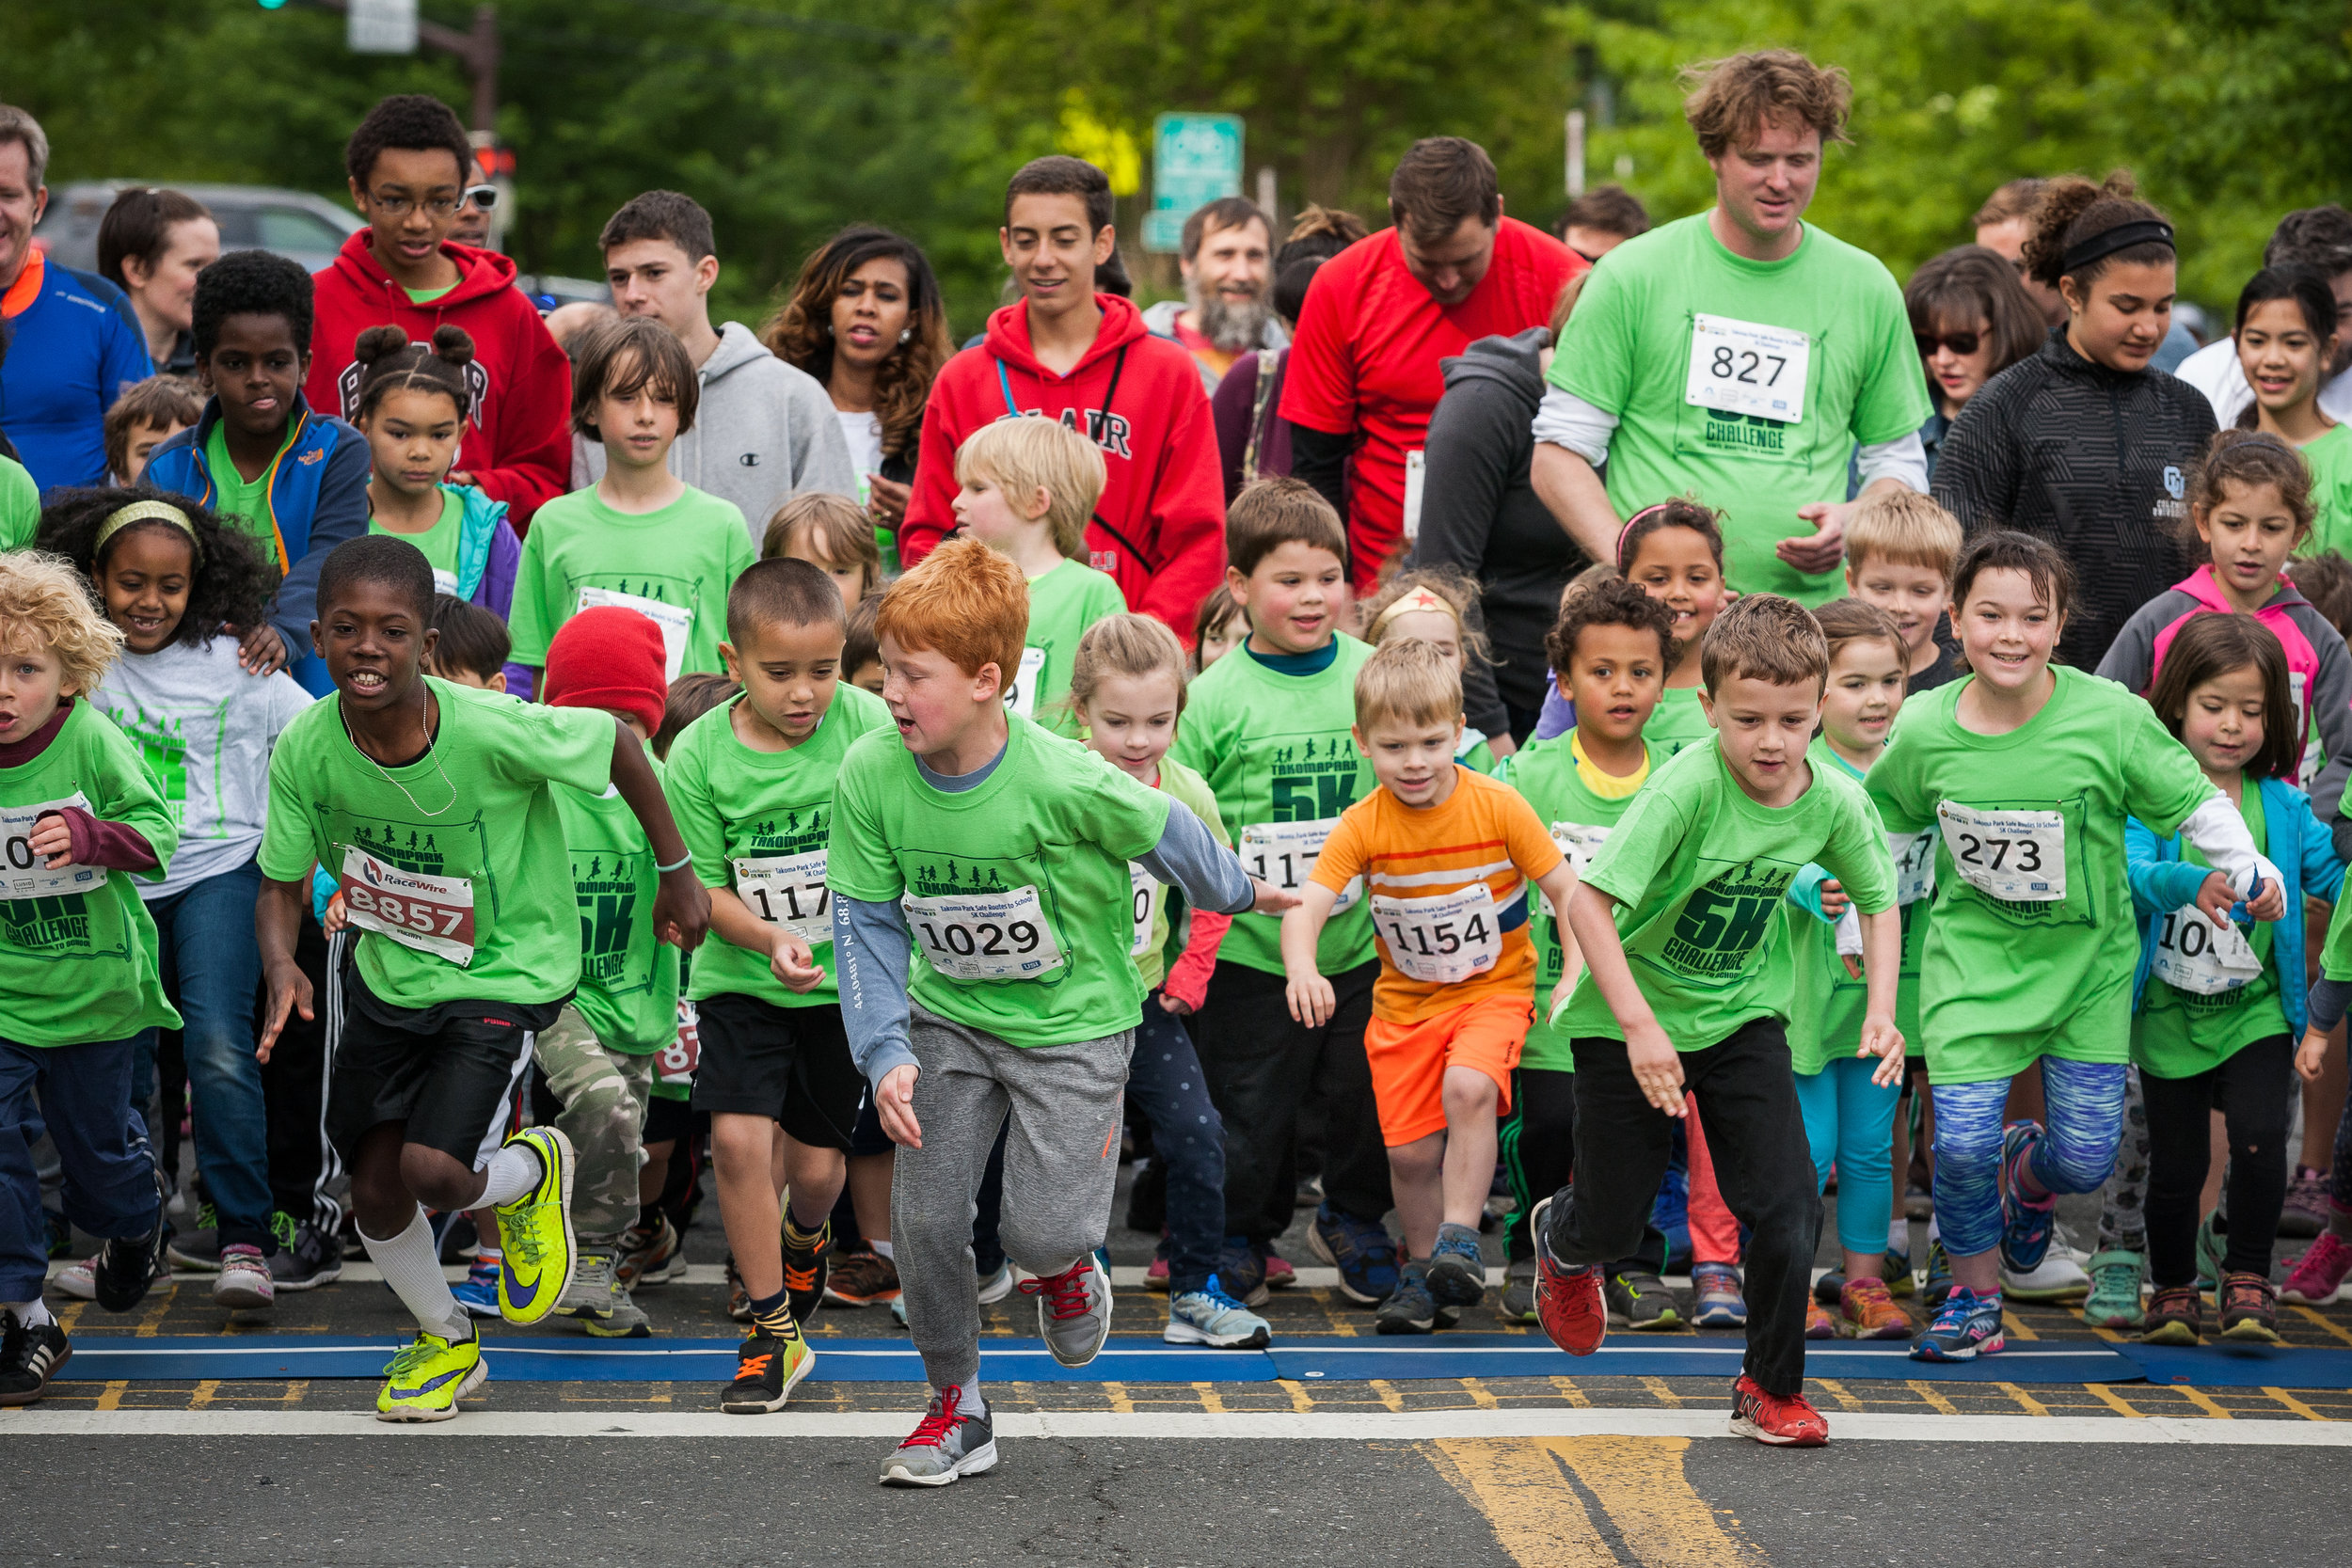 Kids have the option of doing the 5K, the one mile timed fun run or even the quarter mile youth run, if they are small.